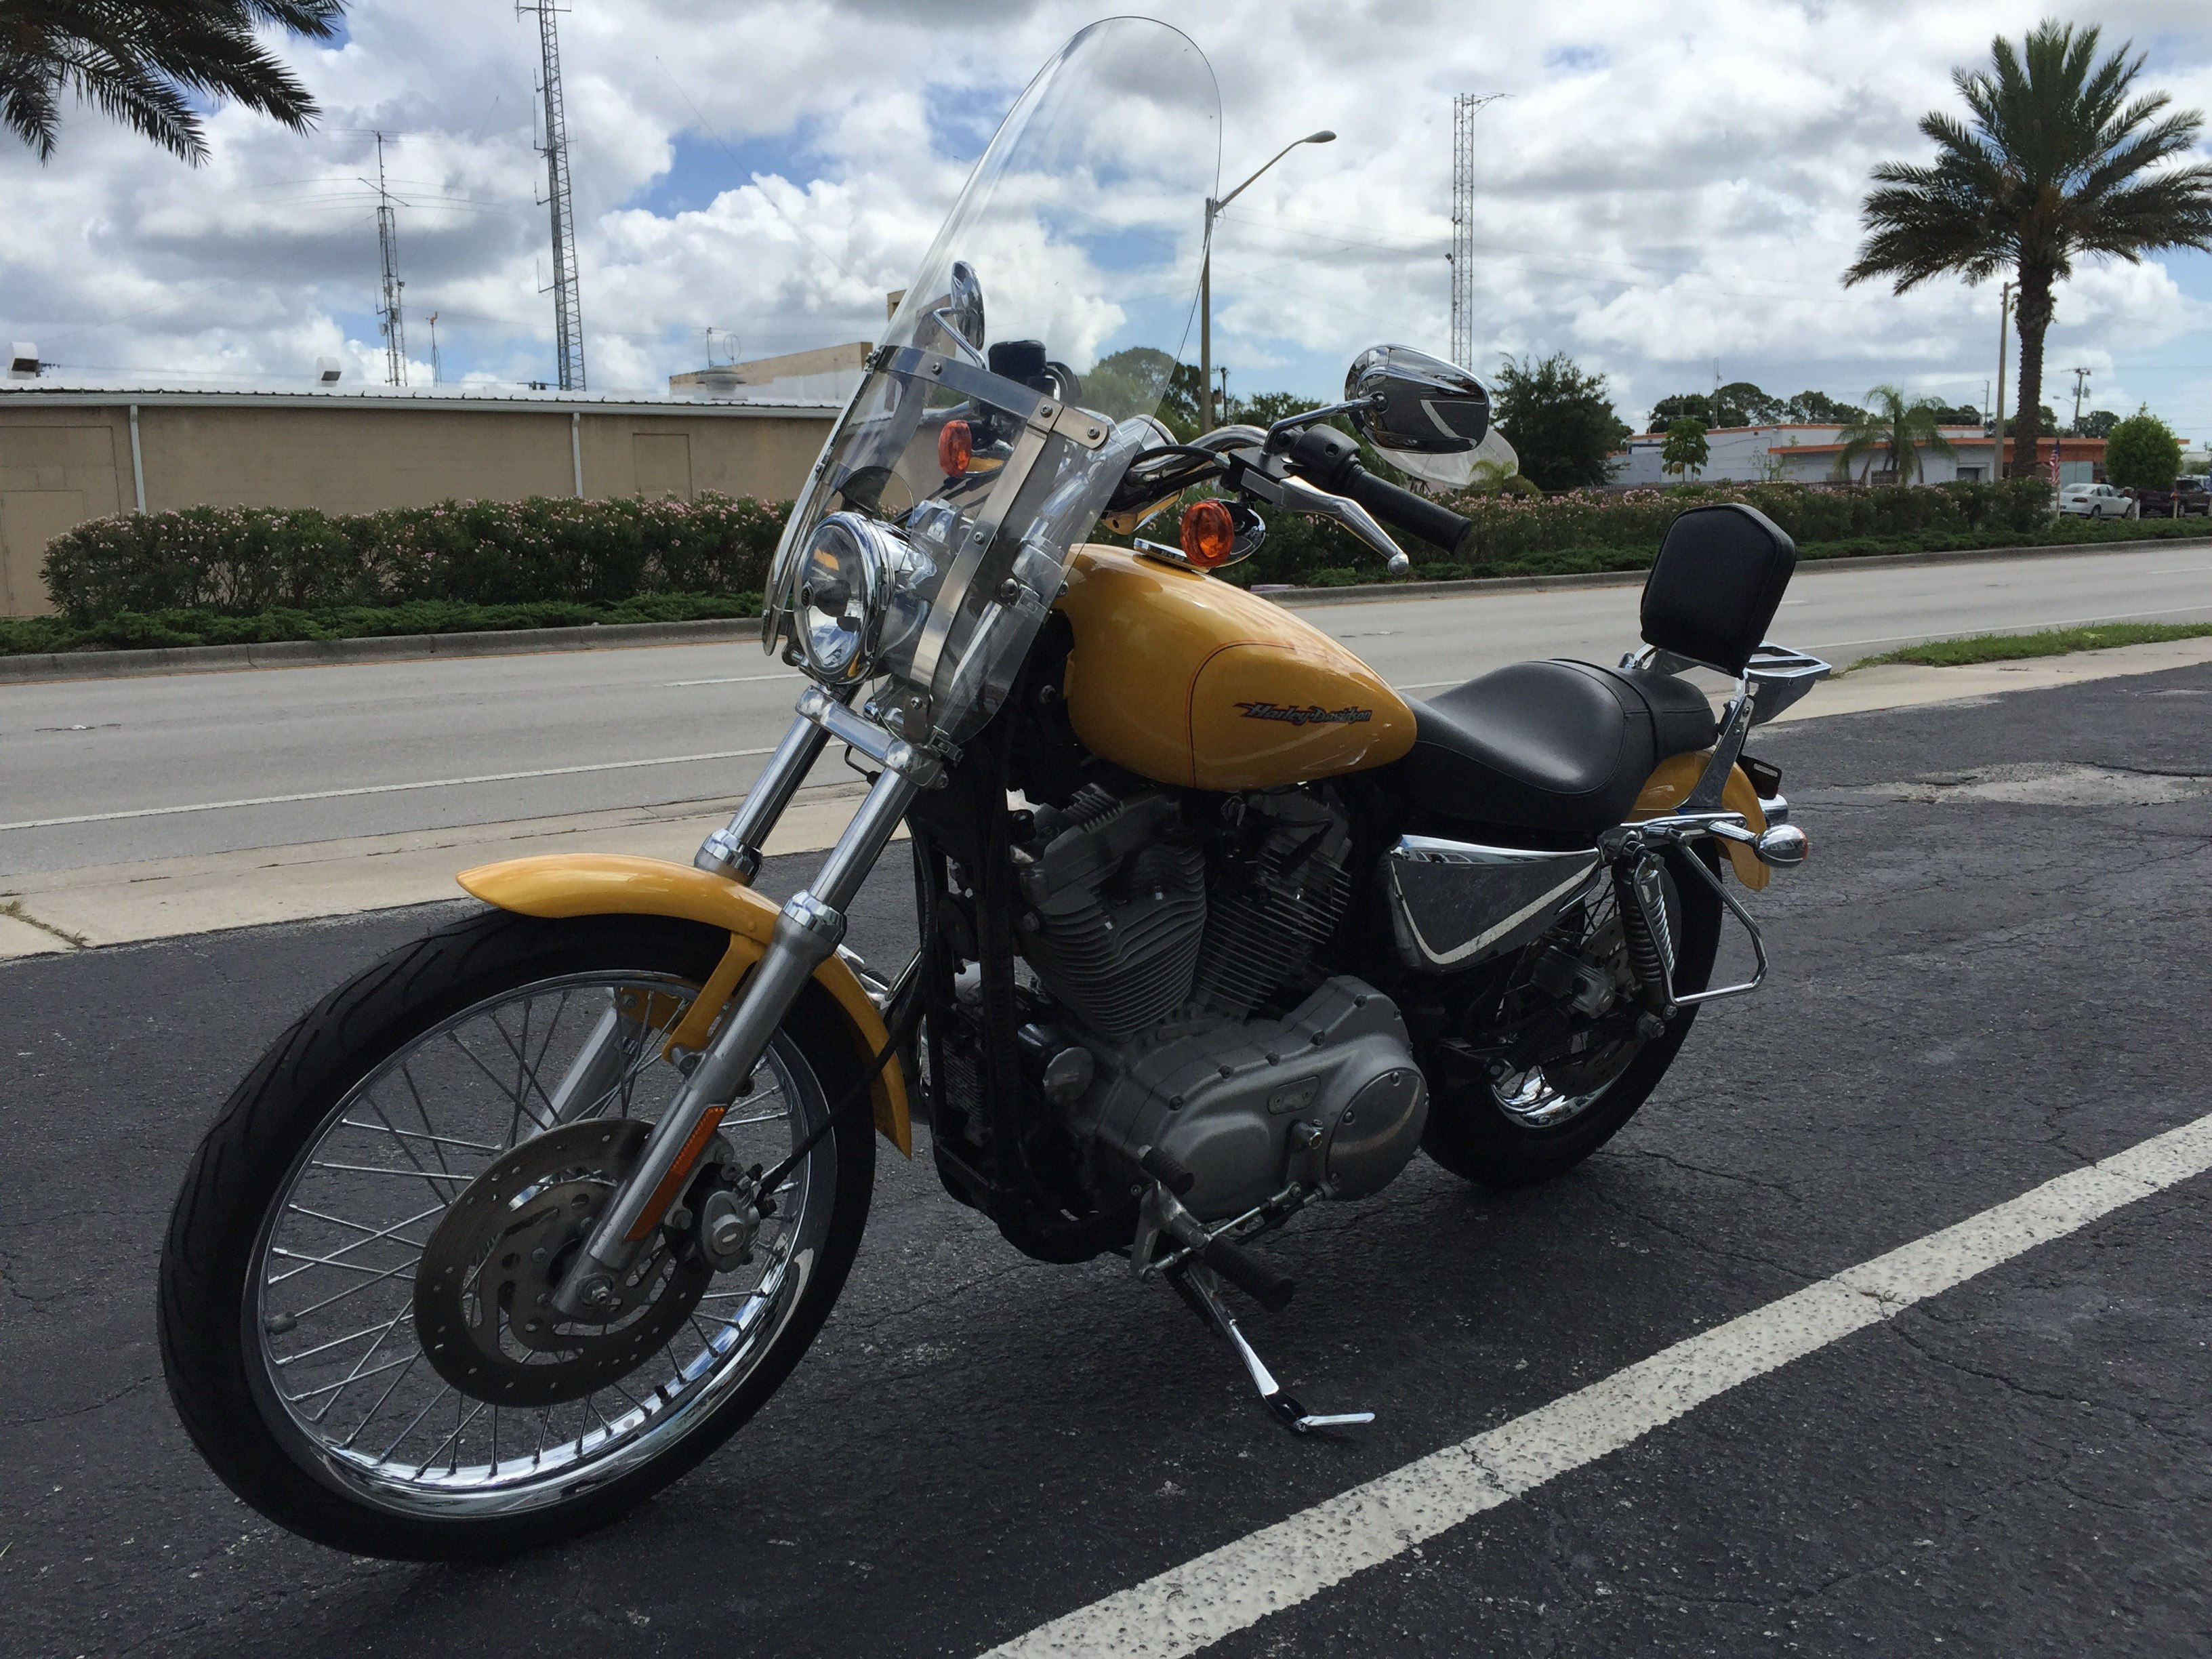 2005 Harley-Davidson Sportster® XL 883C in Cocoa, Florida - Photo 2